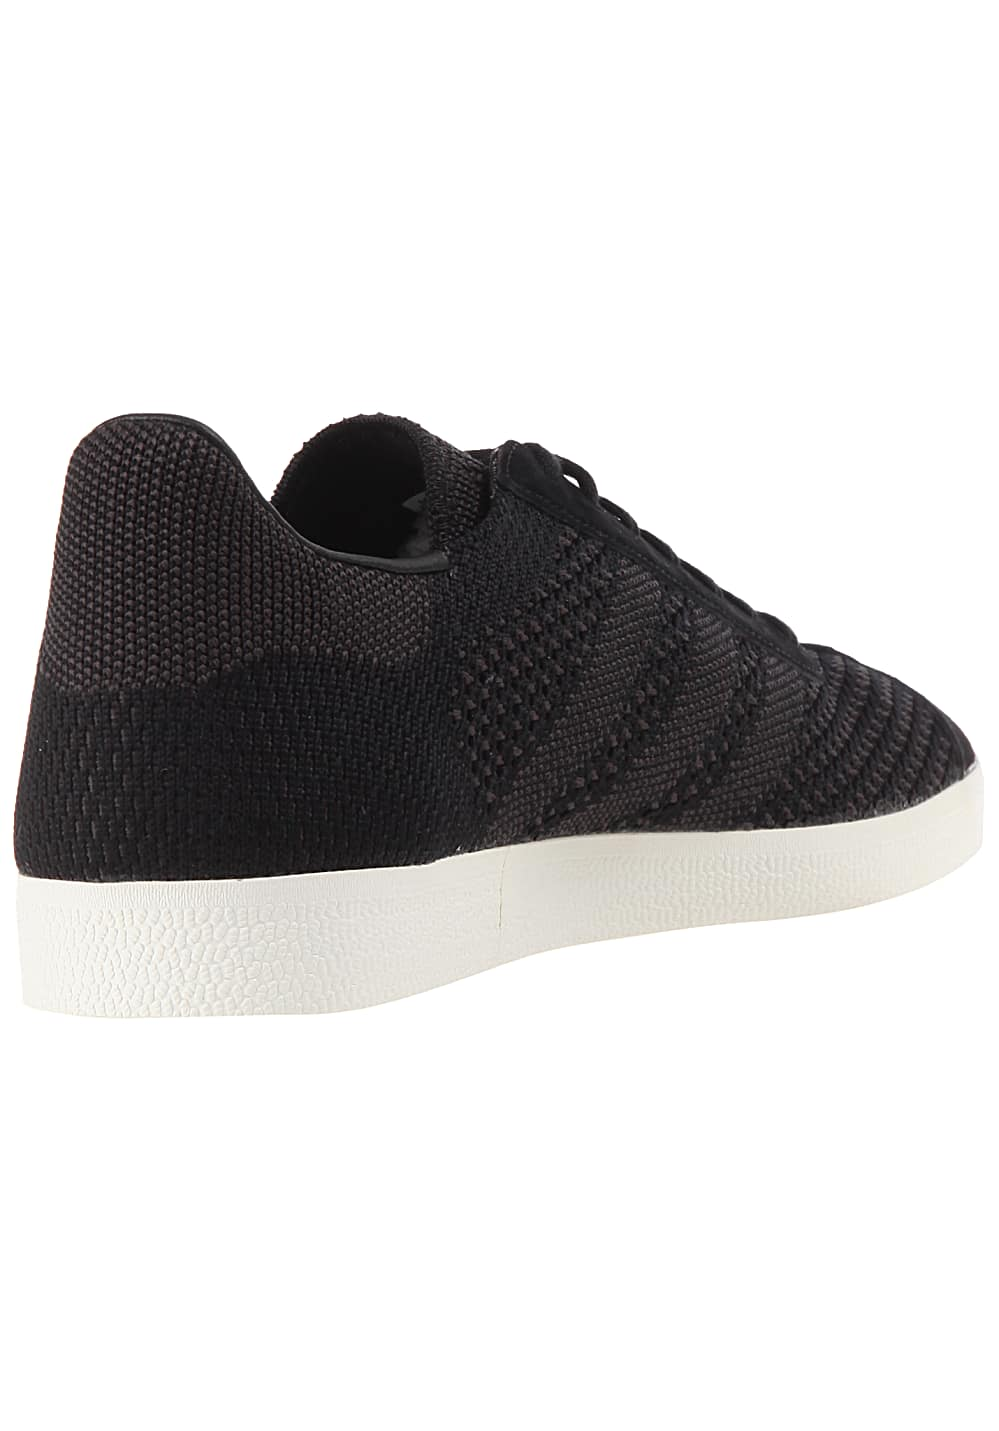 ADIDAS ORIGINALS Gazelle Primeknit Baskets Noir